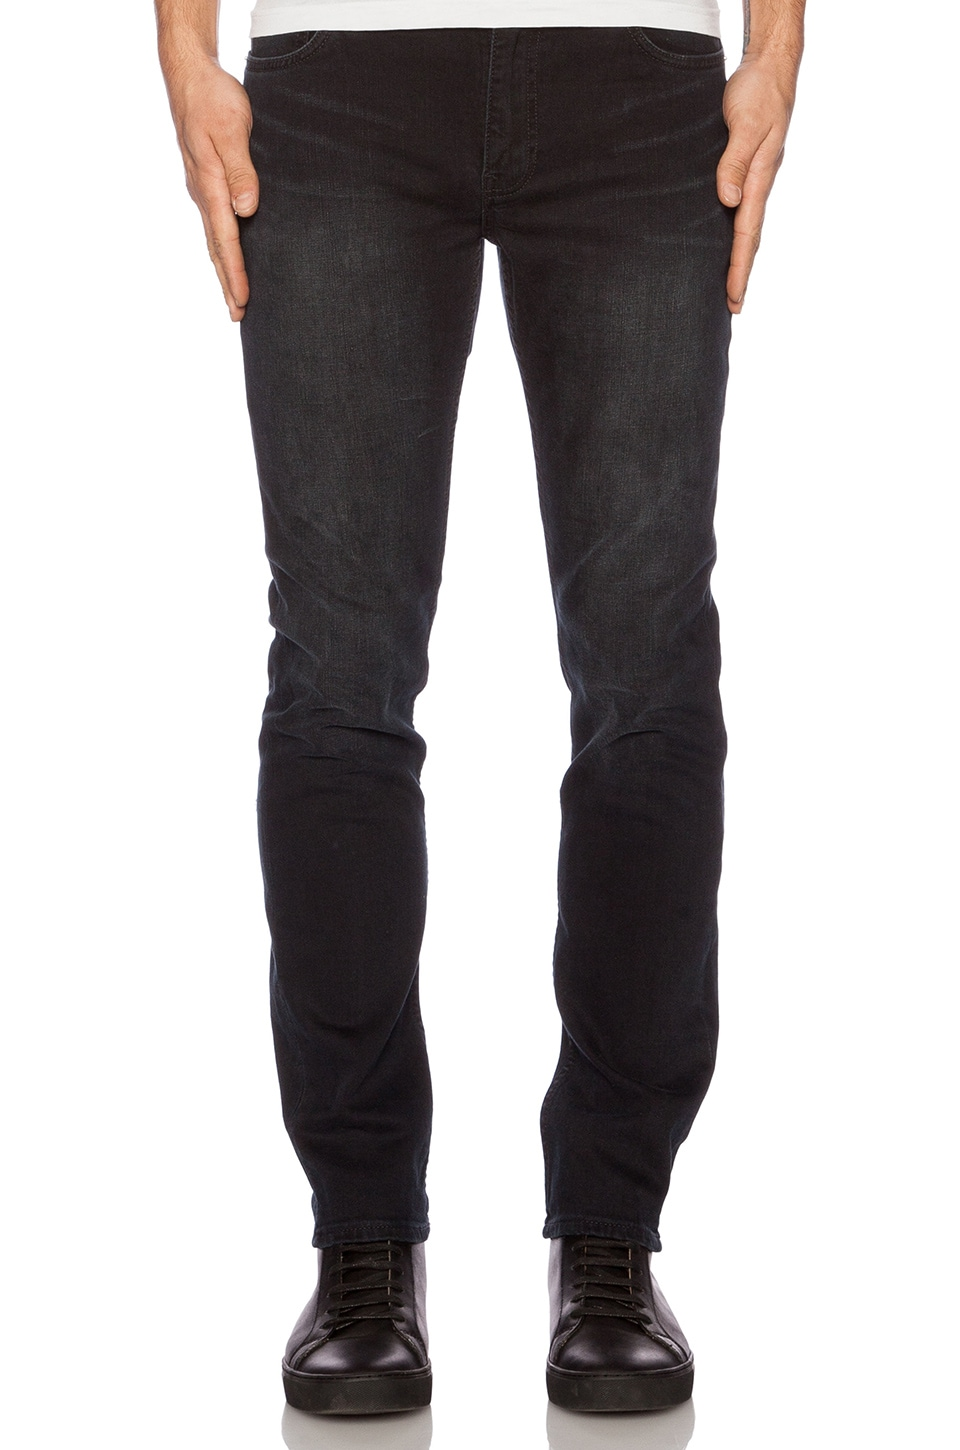 BLK DNM Jeans 5 in Beekman Black